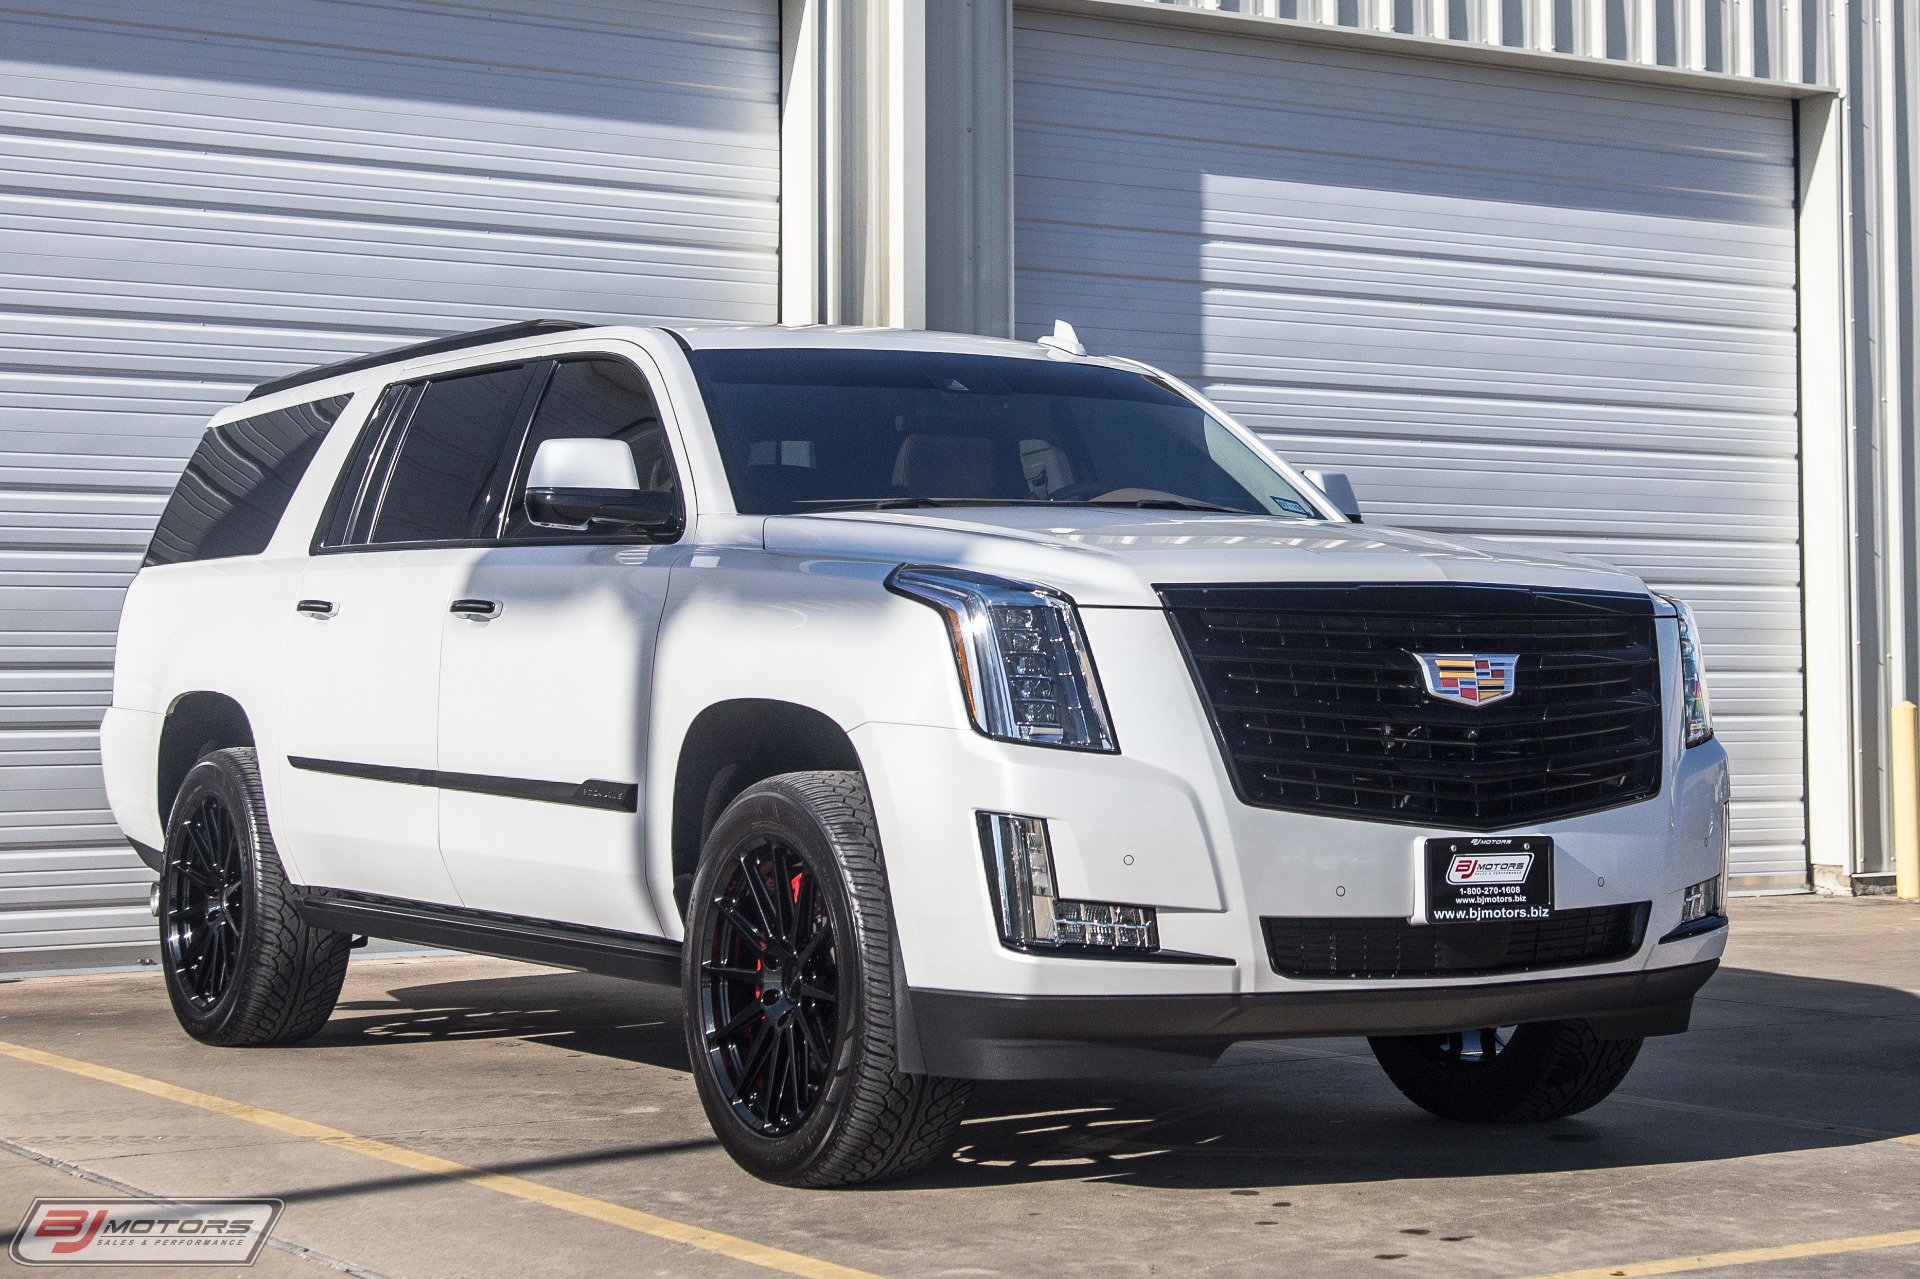 Used-2016-Cadillac-Escalade-ESV-Platinum-Hennessey-Performance-HPE650-Package